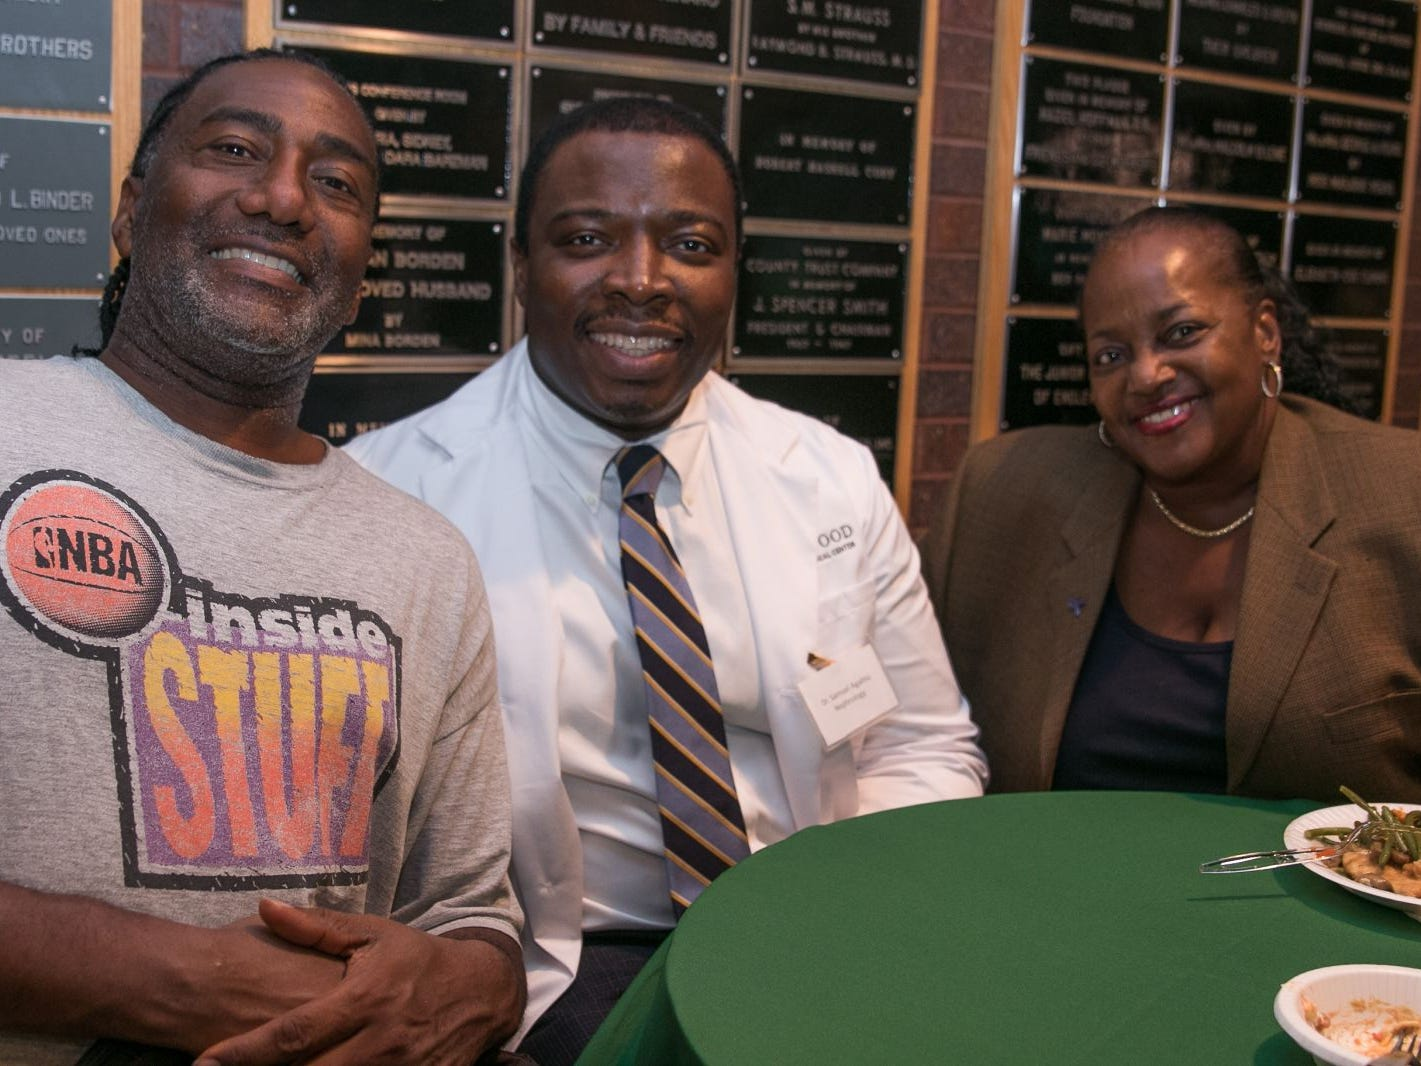 Joe Thomas, Dr. Samuel Agahiu, Karen Waters. Englewood Health hosted its Men's Health and Football event with former Jets and Giants players and Don La Greca from ESPN radio. Attendees watched the Thursday night football game while receiving advice about staying healthy and tackling health problems early on. 09/20/2018